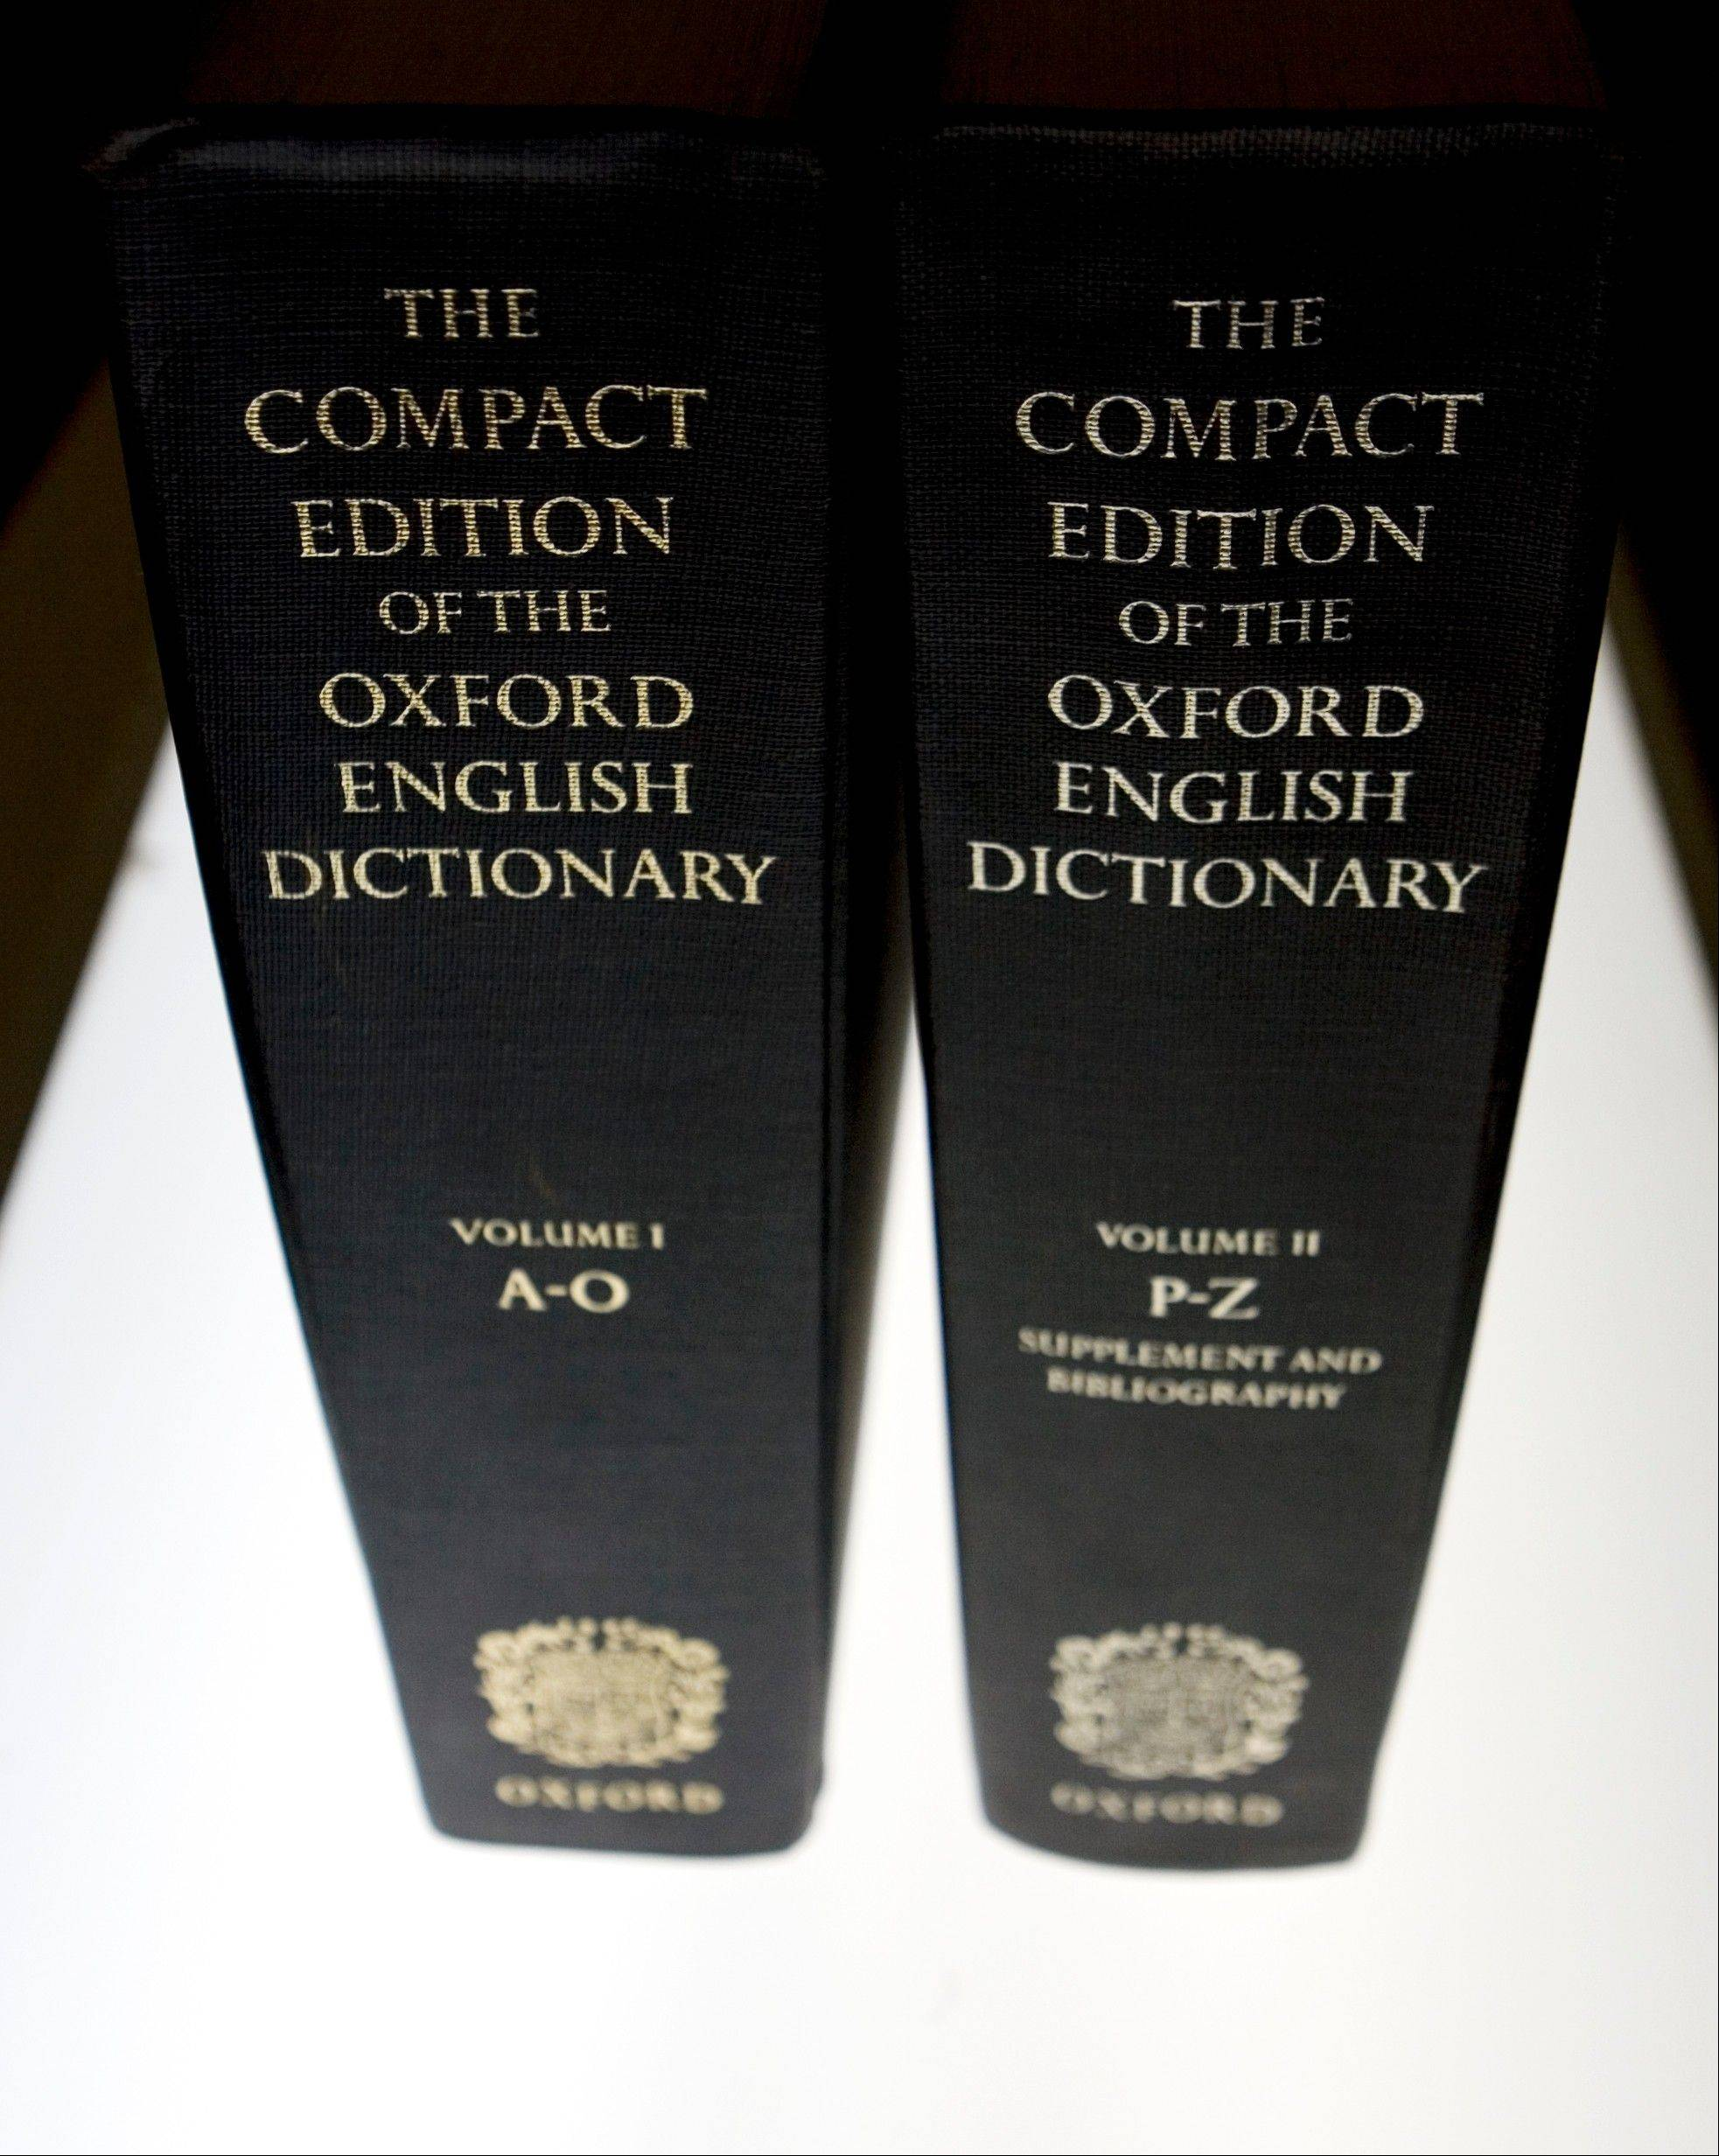 A report that Oxford University had changed its comma rule left some punctuation obsessives alarmed, annoyed, and distraught. Passions subsided as the university said the news was imprecise, incomplete and misleading. Oxford University Press, birthplace of the Oxford comma, said Thursday that there has been no change in its century-old style, and jumped into the Twittersphere to confirm that it still follows the standard set out in �New Hart�s Rules.�